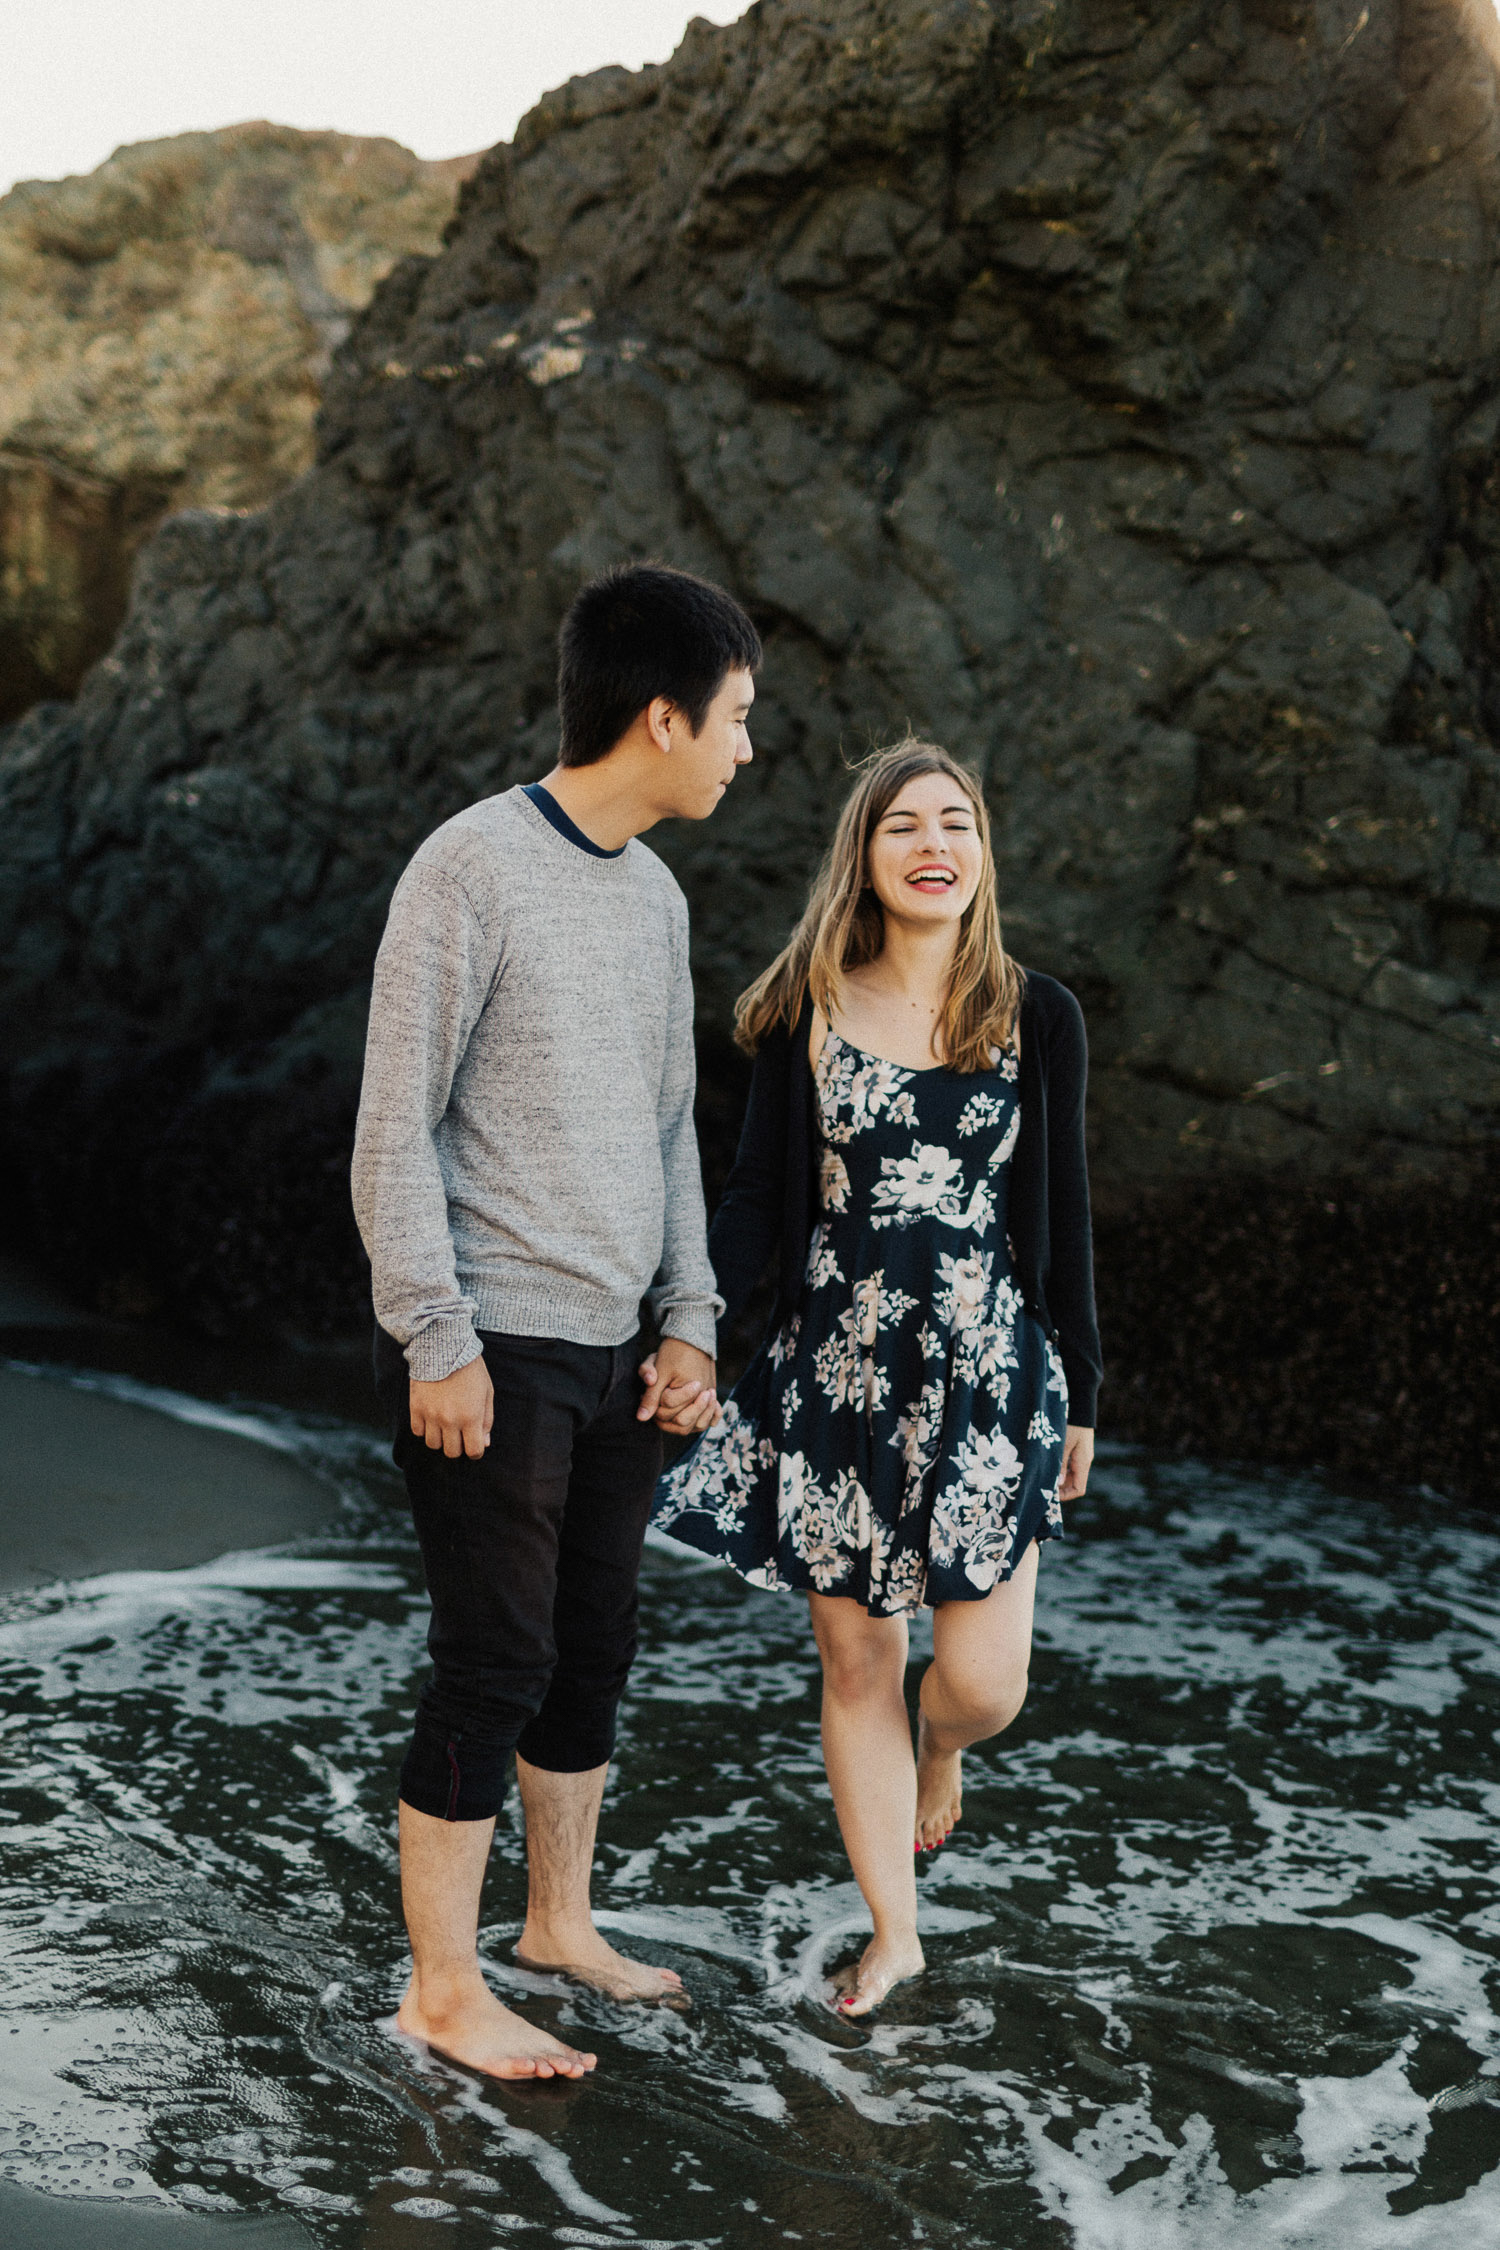 Image of couple hold hands together on beach